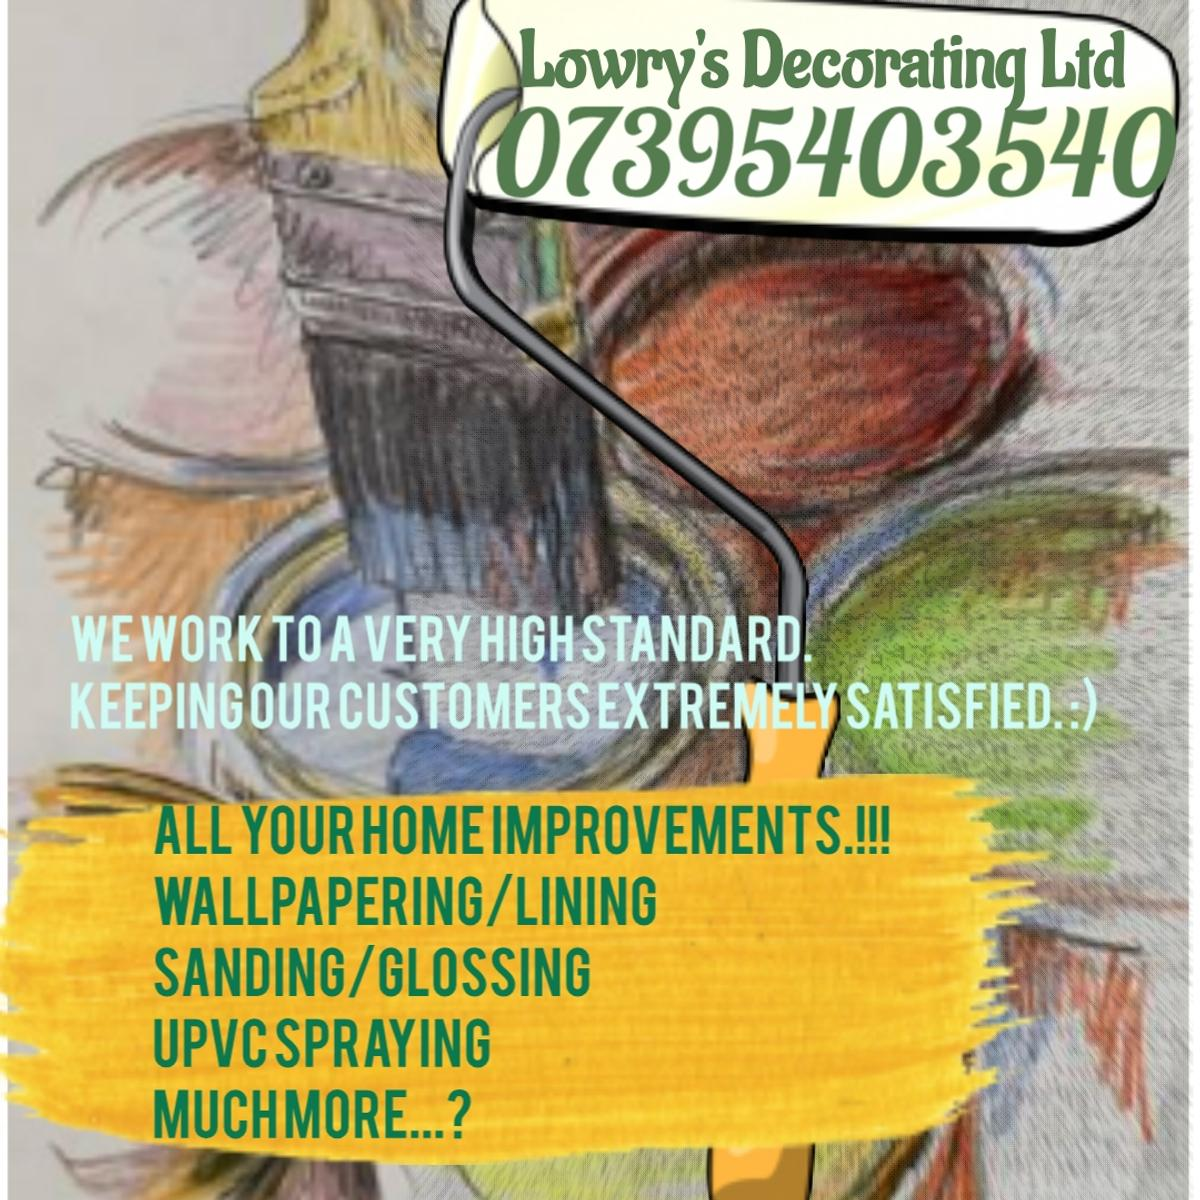 Give your home an artist's touch.! Contact for your free quote.! 07395403540 Brightening your home. All work undertaken Wallpapering Lining Filling/Sanding Skirting boards Covings UPVC spraying. Much More.! All work carried out will be completed to a very high standard.!